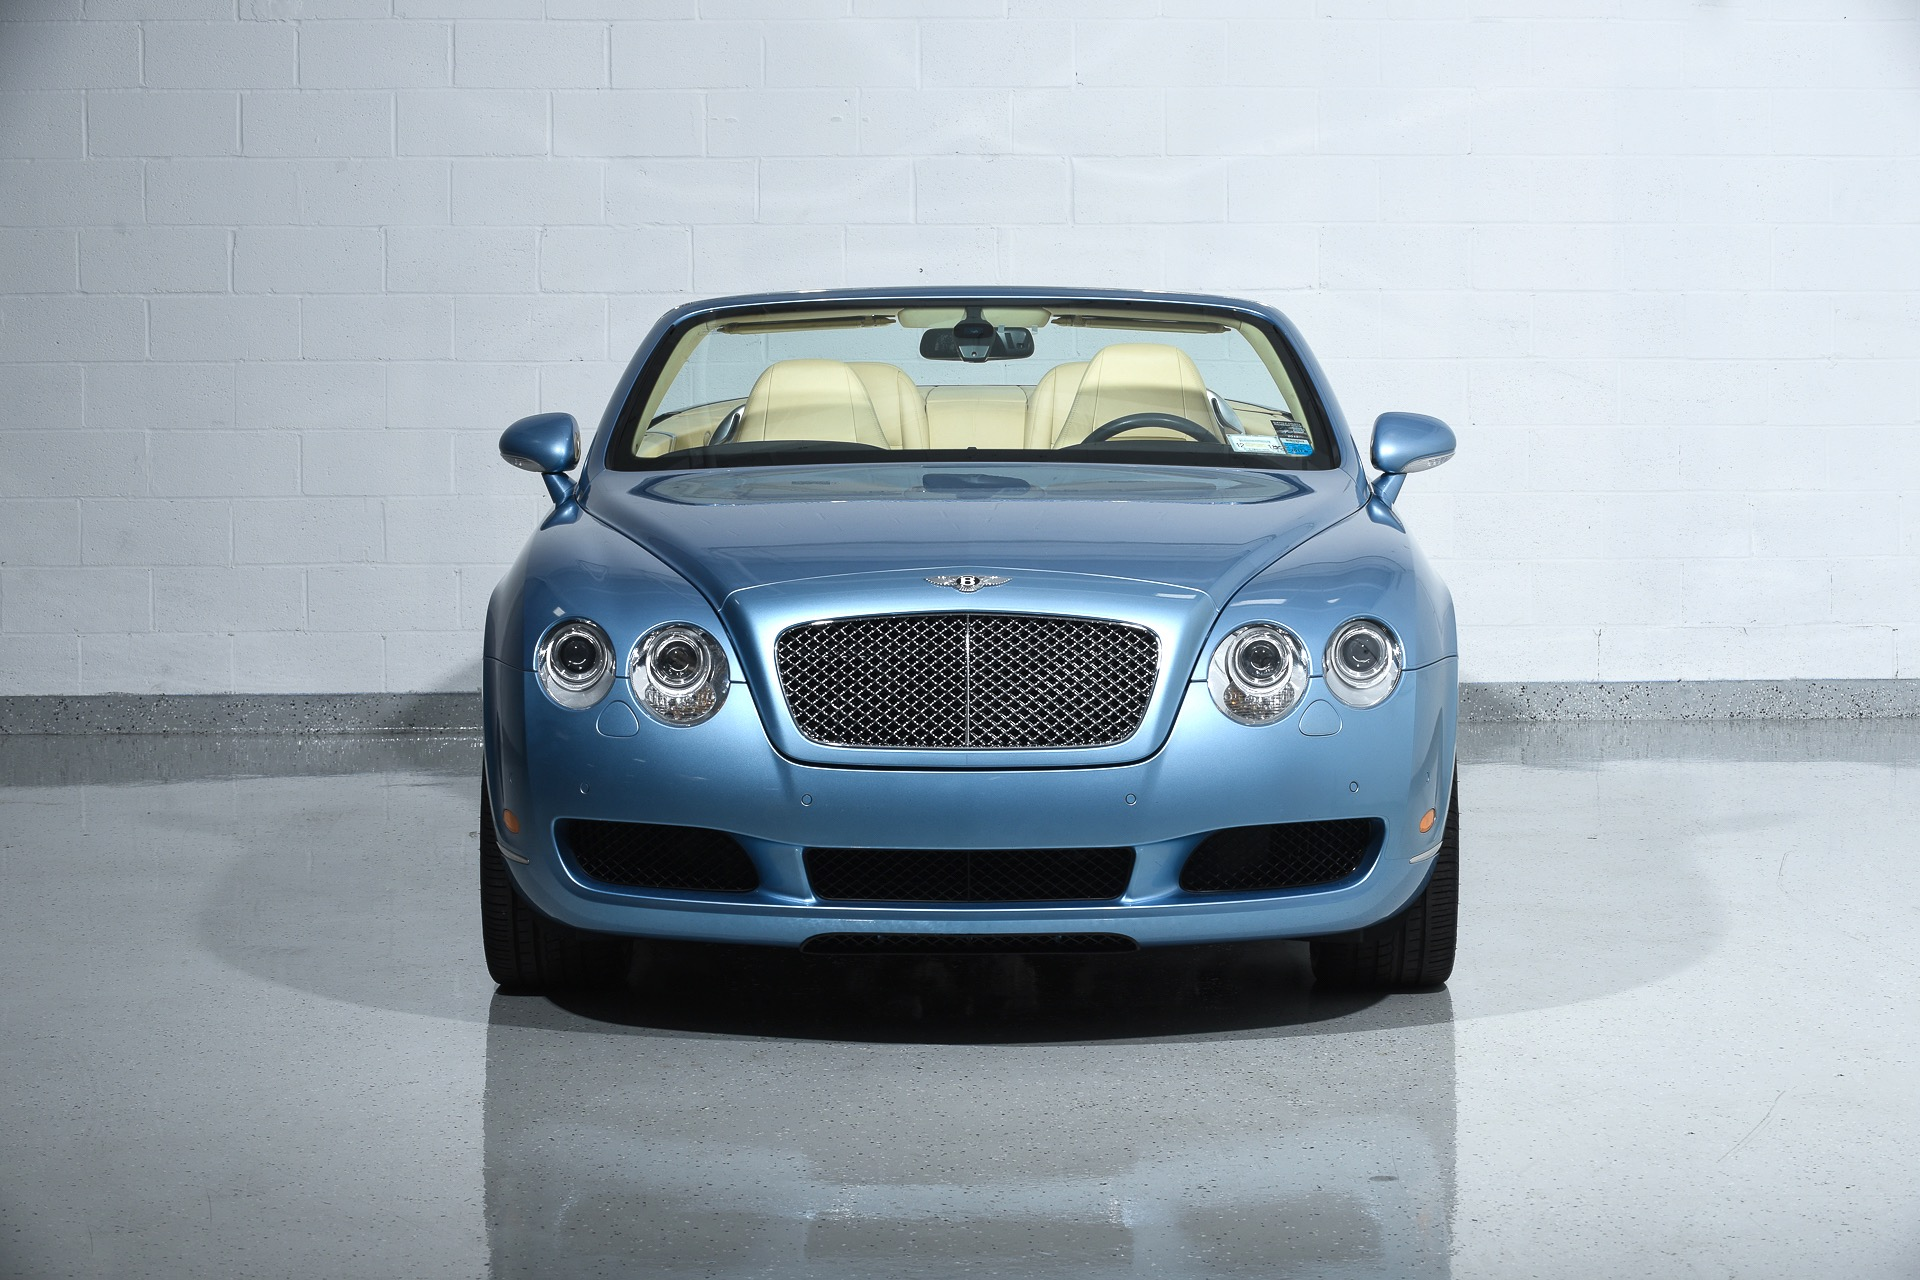 Used 2007 Bentley Continental Gtc For Sale 83 900 Motorcar Classics Stock 1077